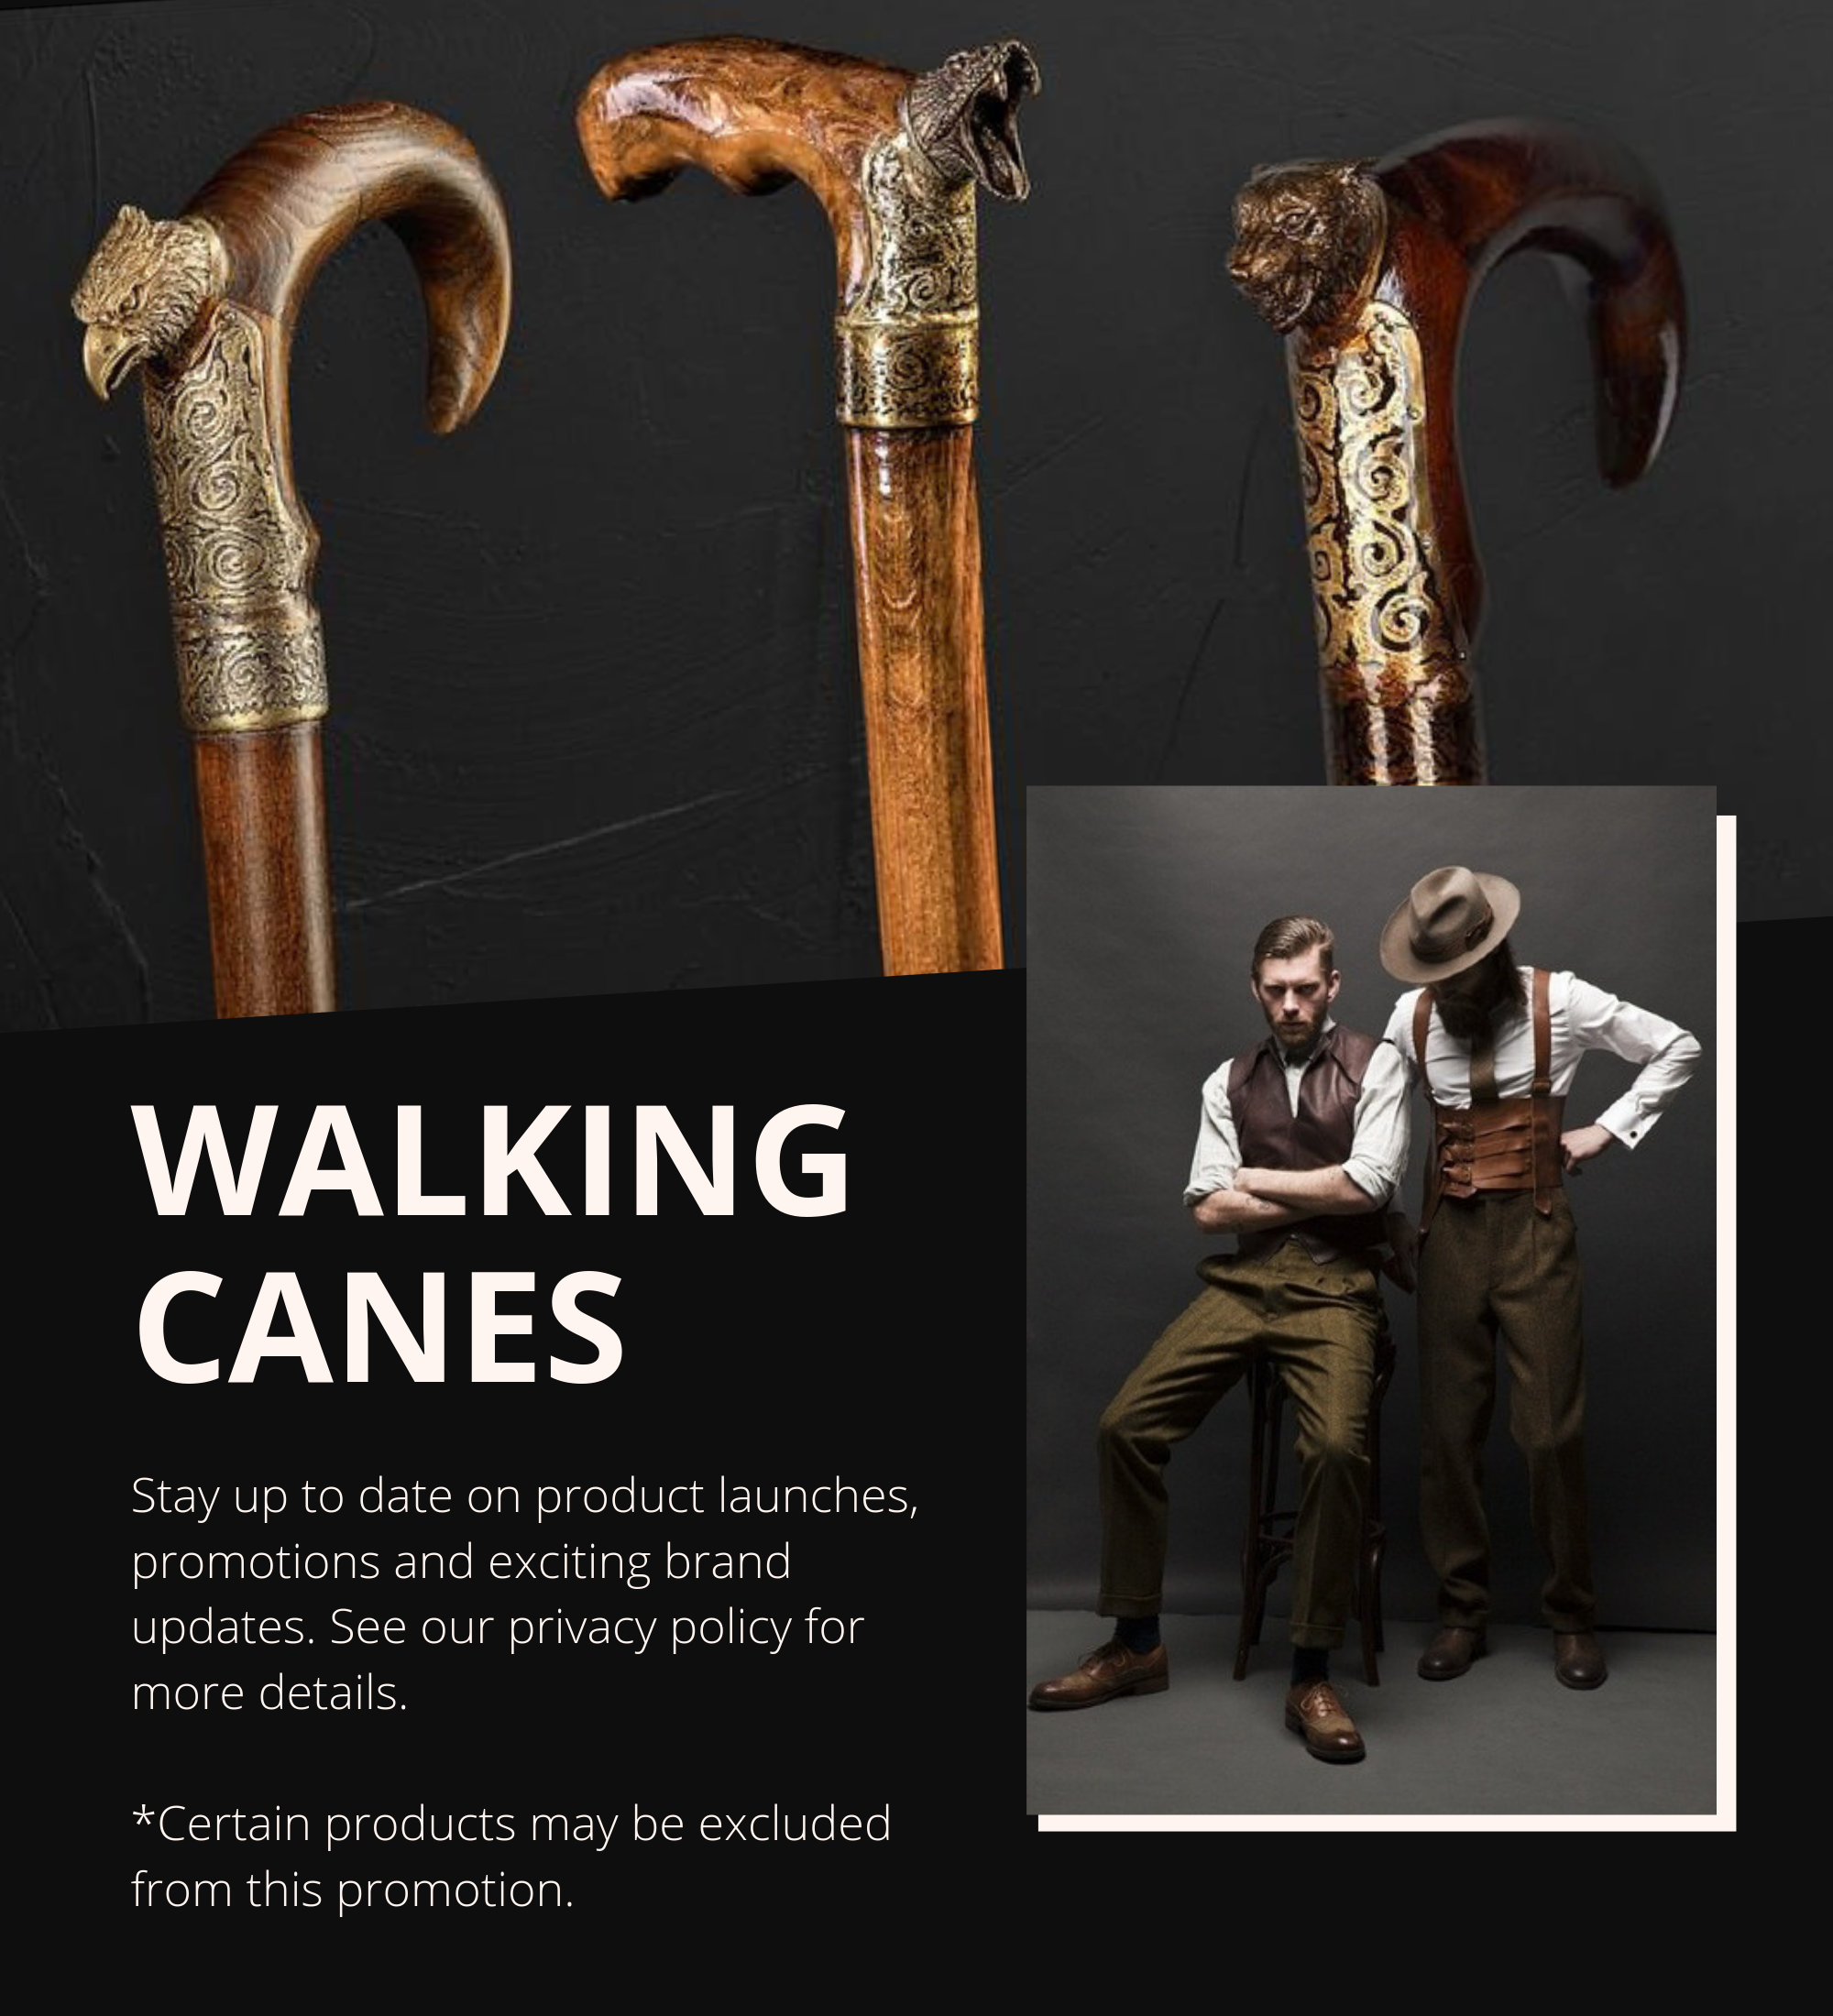 Walking Canes Walking Sticks Walking Cane Walking Stick For Women